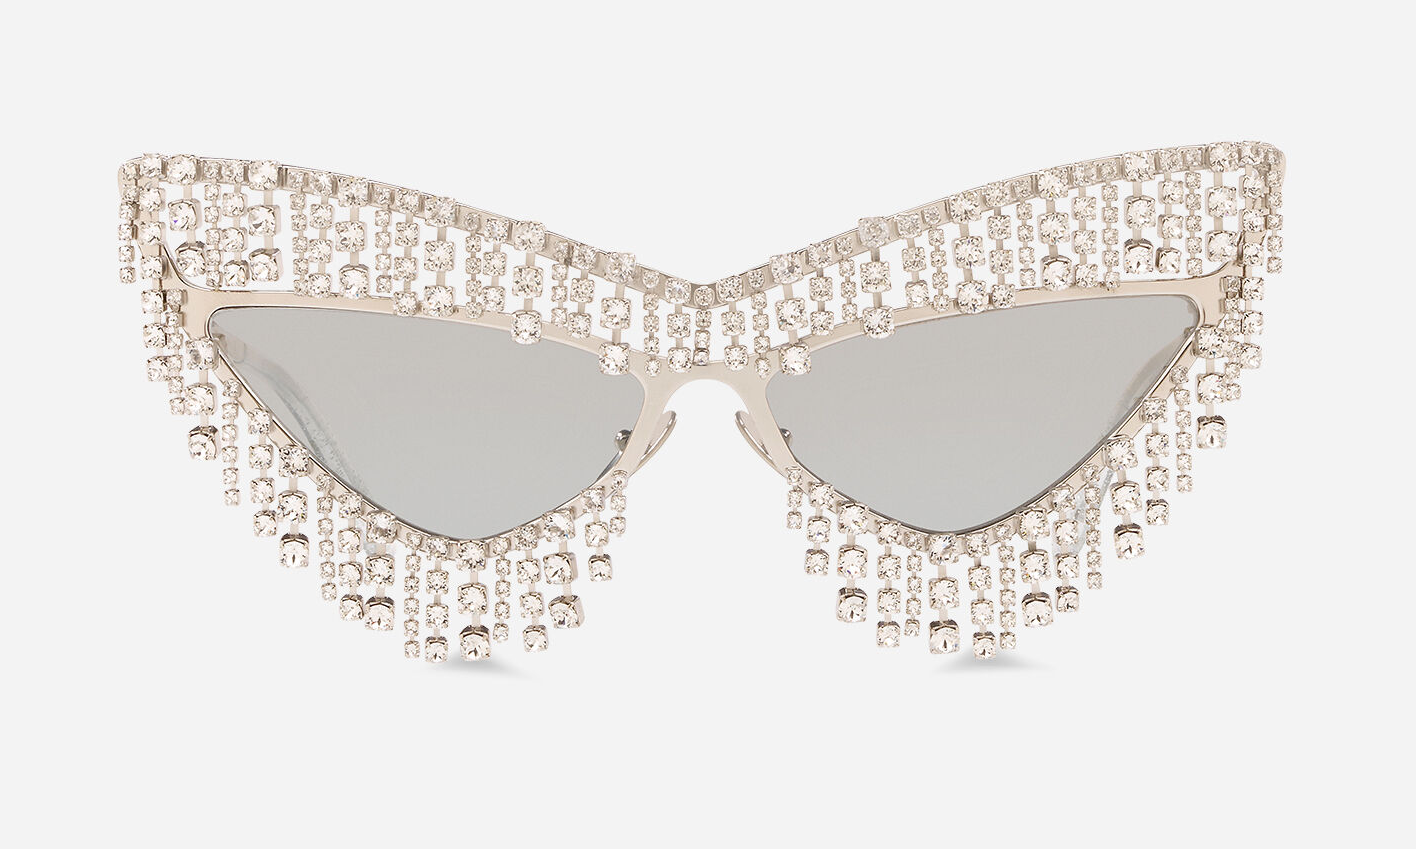 Bling sunglasses Glittering Silver Metal Frame with Pendant Crystals with Mirrored Silver Gradient Lenses